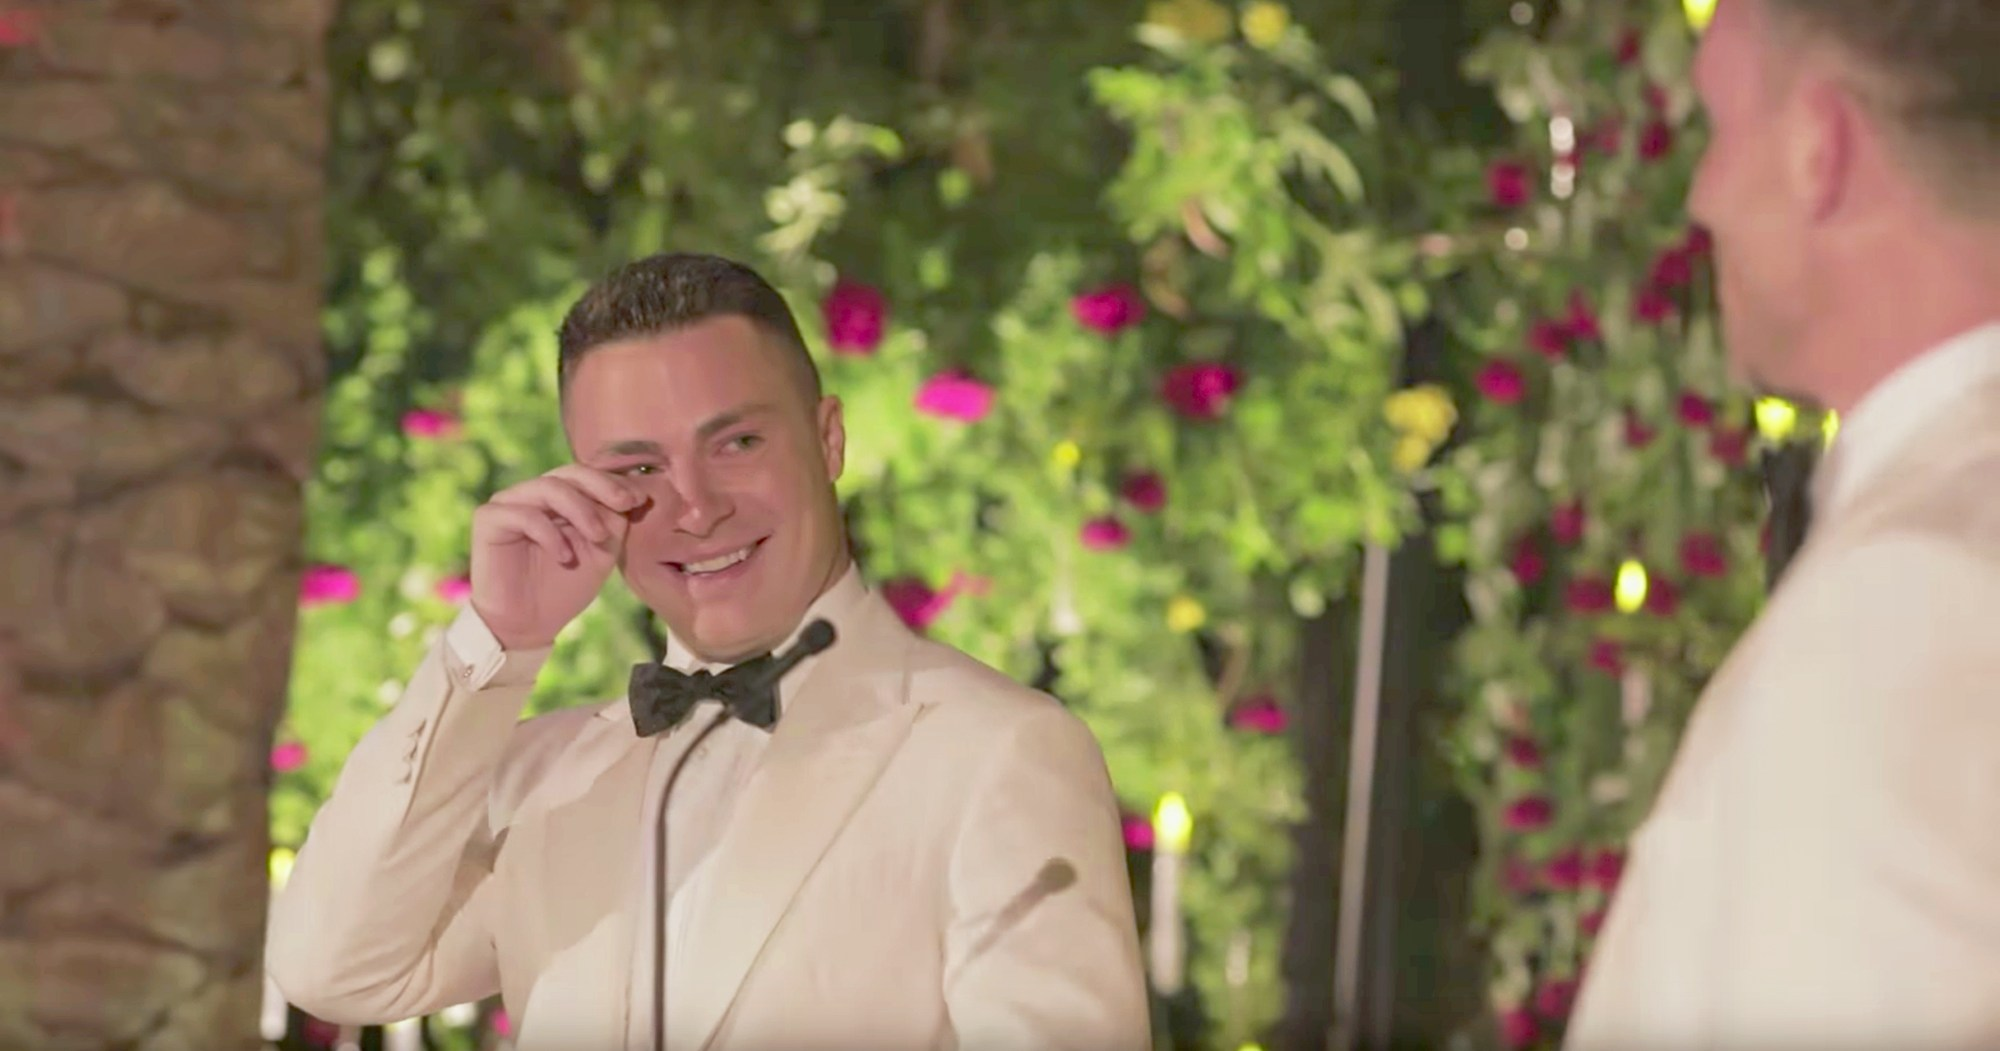 colton single parents Colton underwood: the first virgin 'bachelor' and what else to know  for one,  he's very open about being a virgin [being a virgin] needs to.